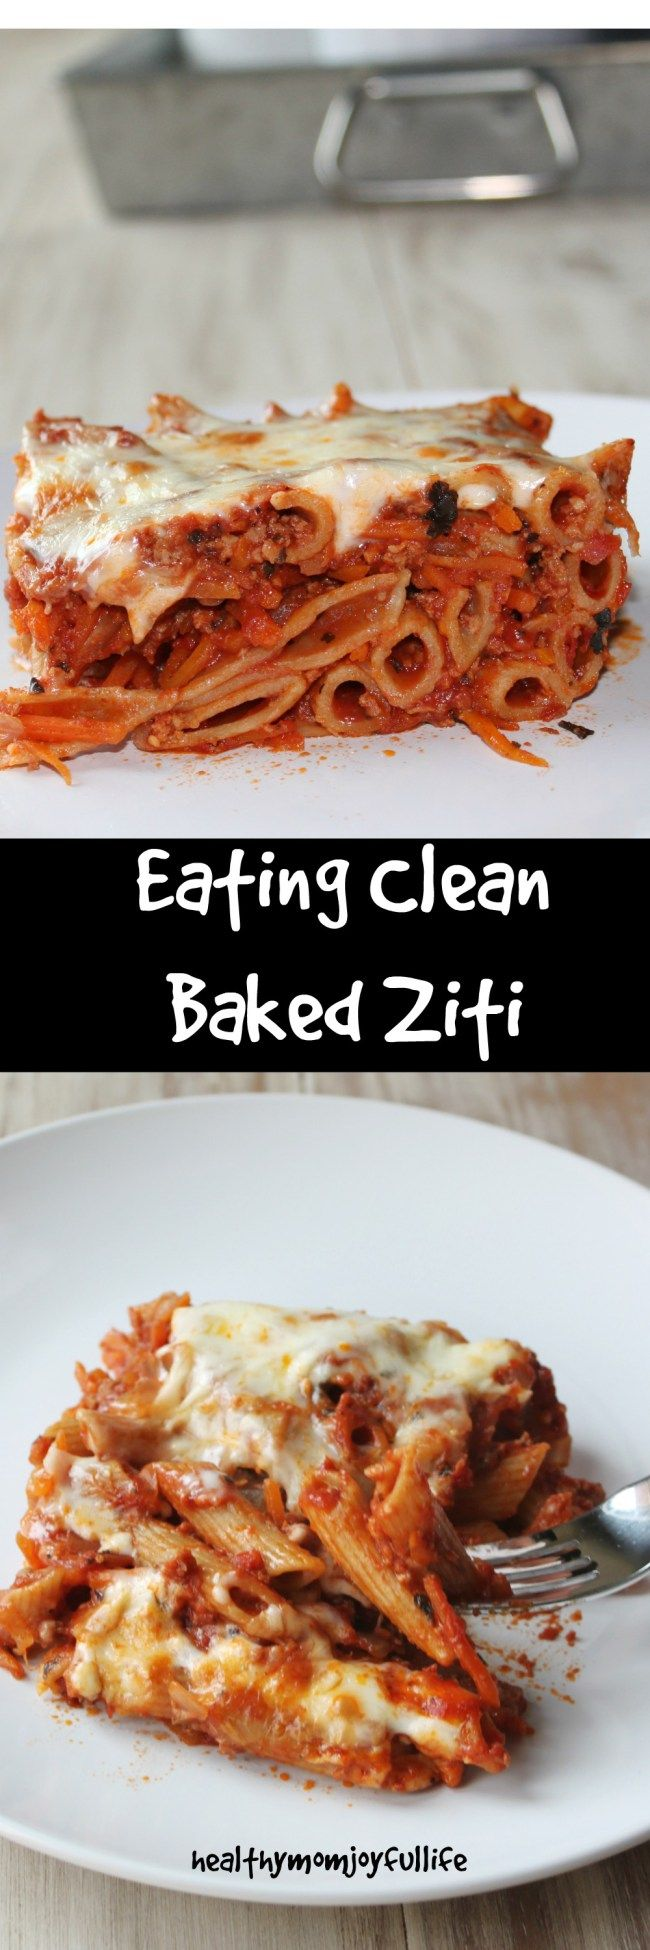 Baked Ziti Eating Clean For The Family